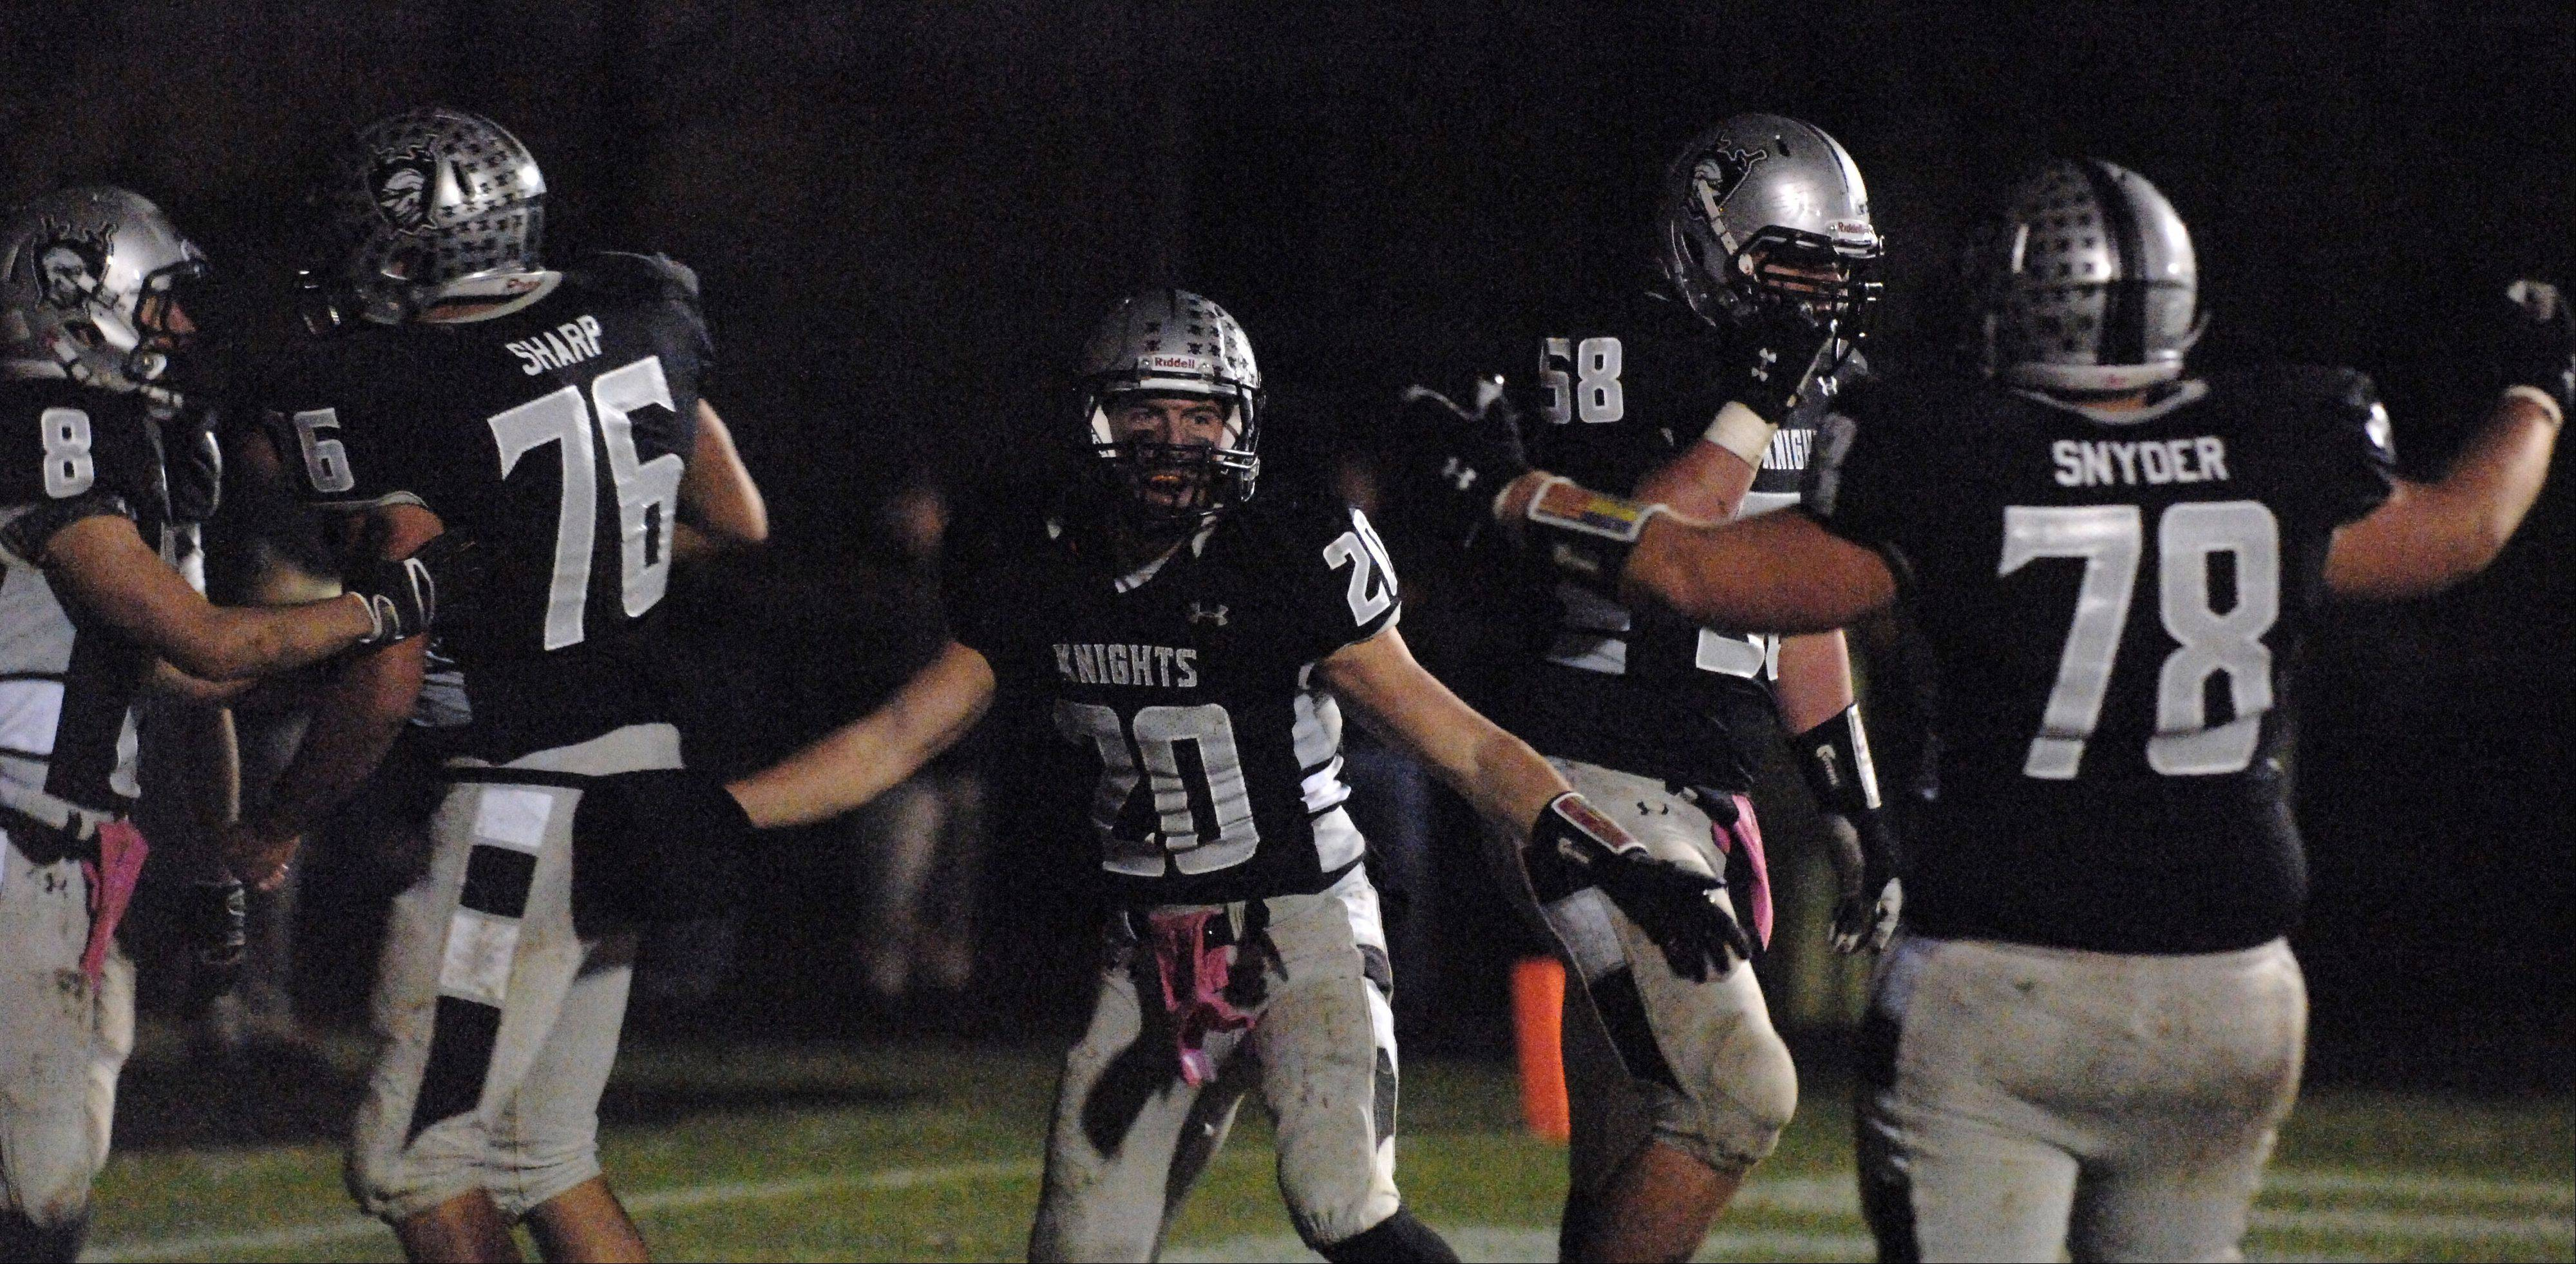 Kaneland's Dylan Nauert and his teammates celebrate his touchdown .